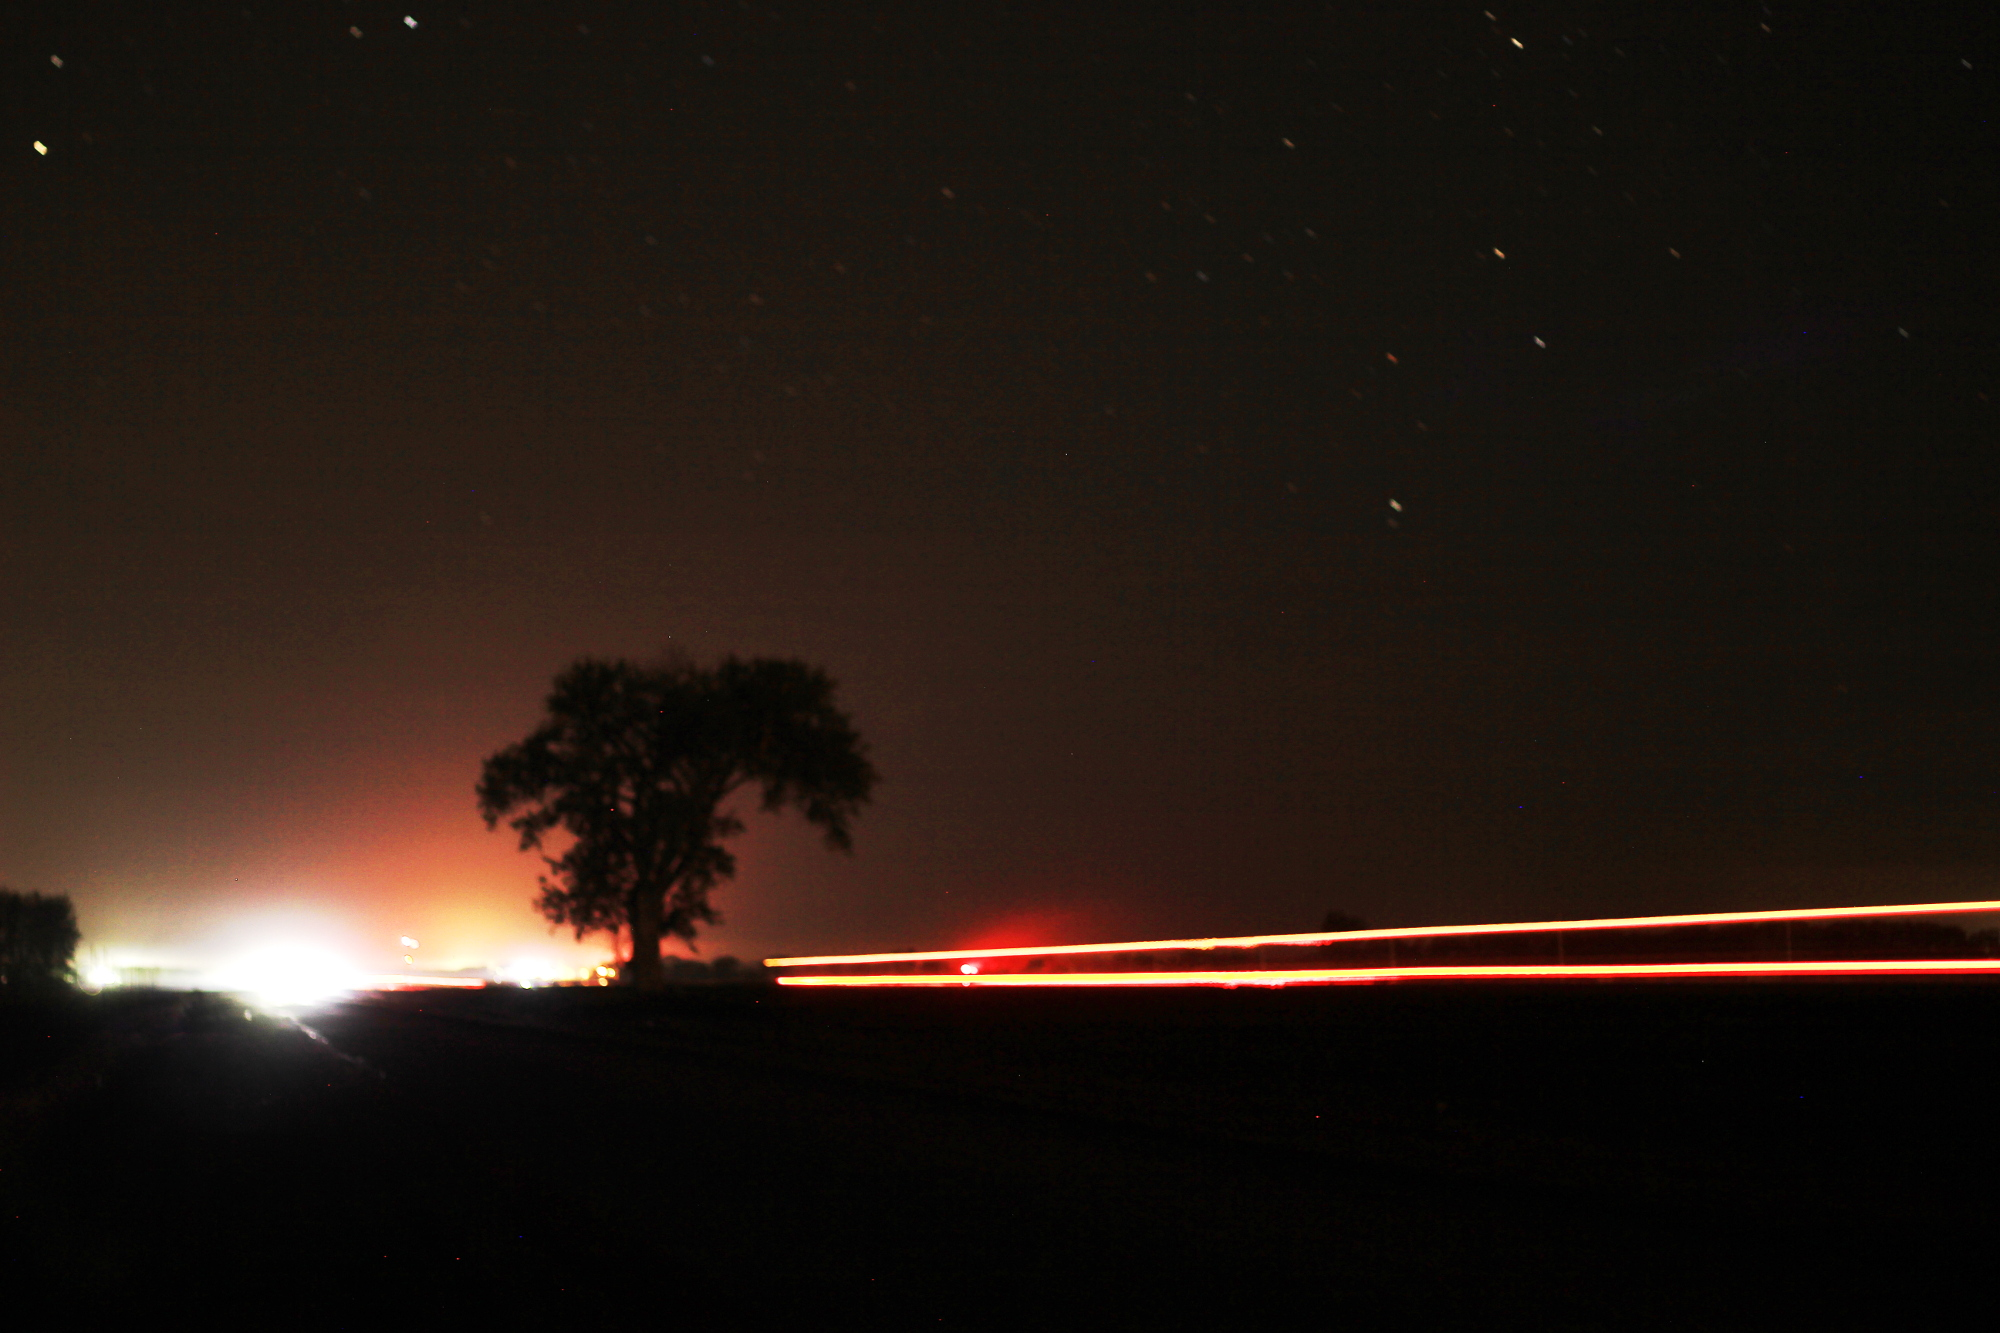 The halfway tree at night